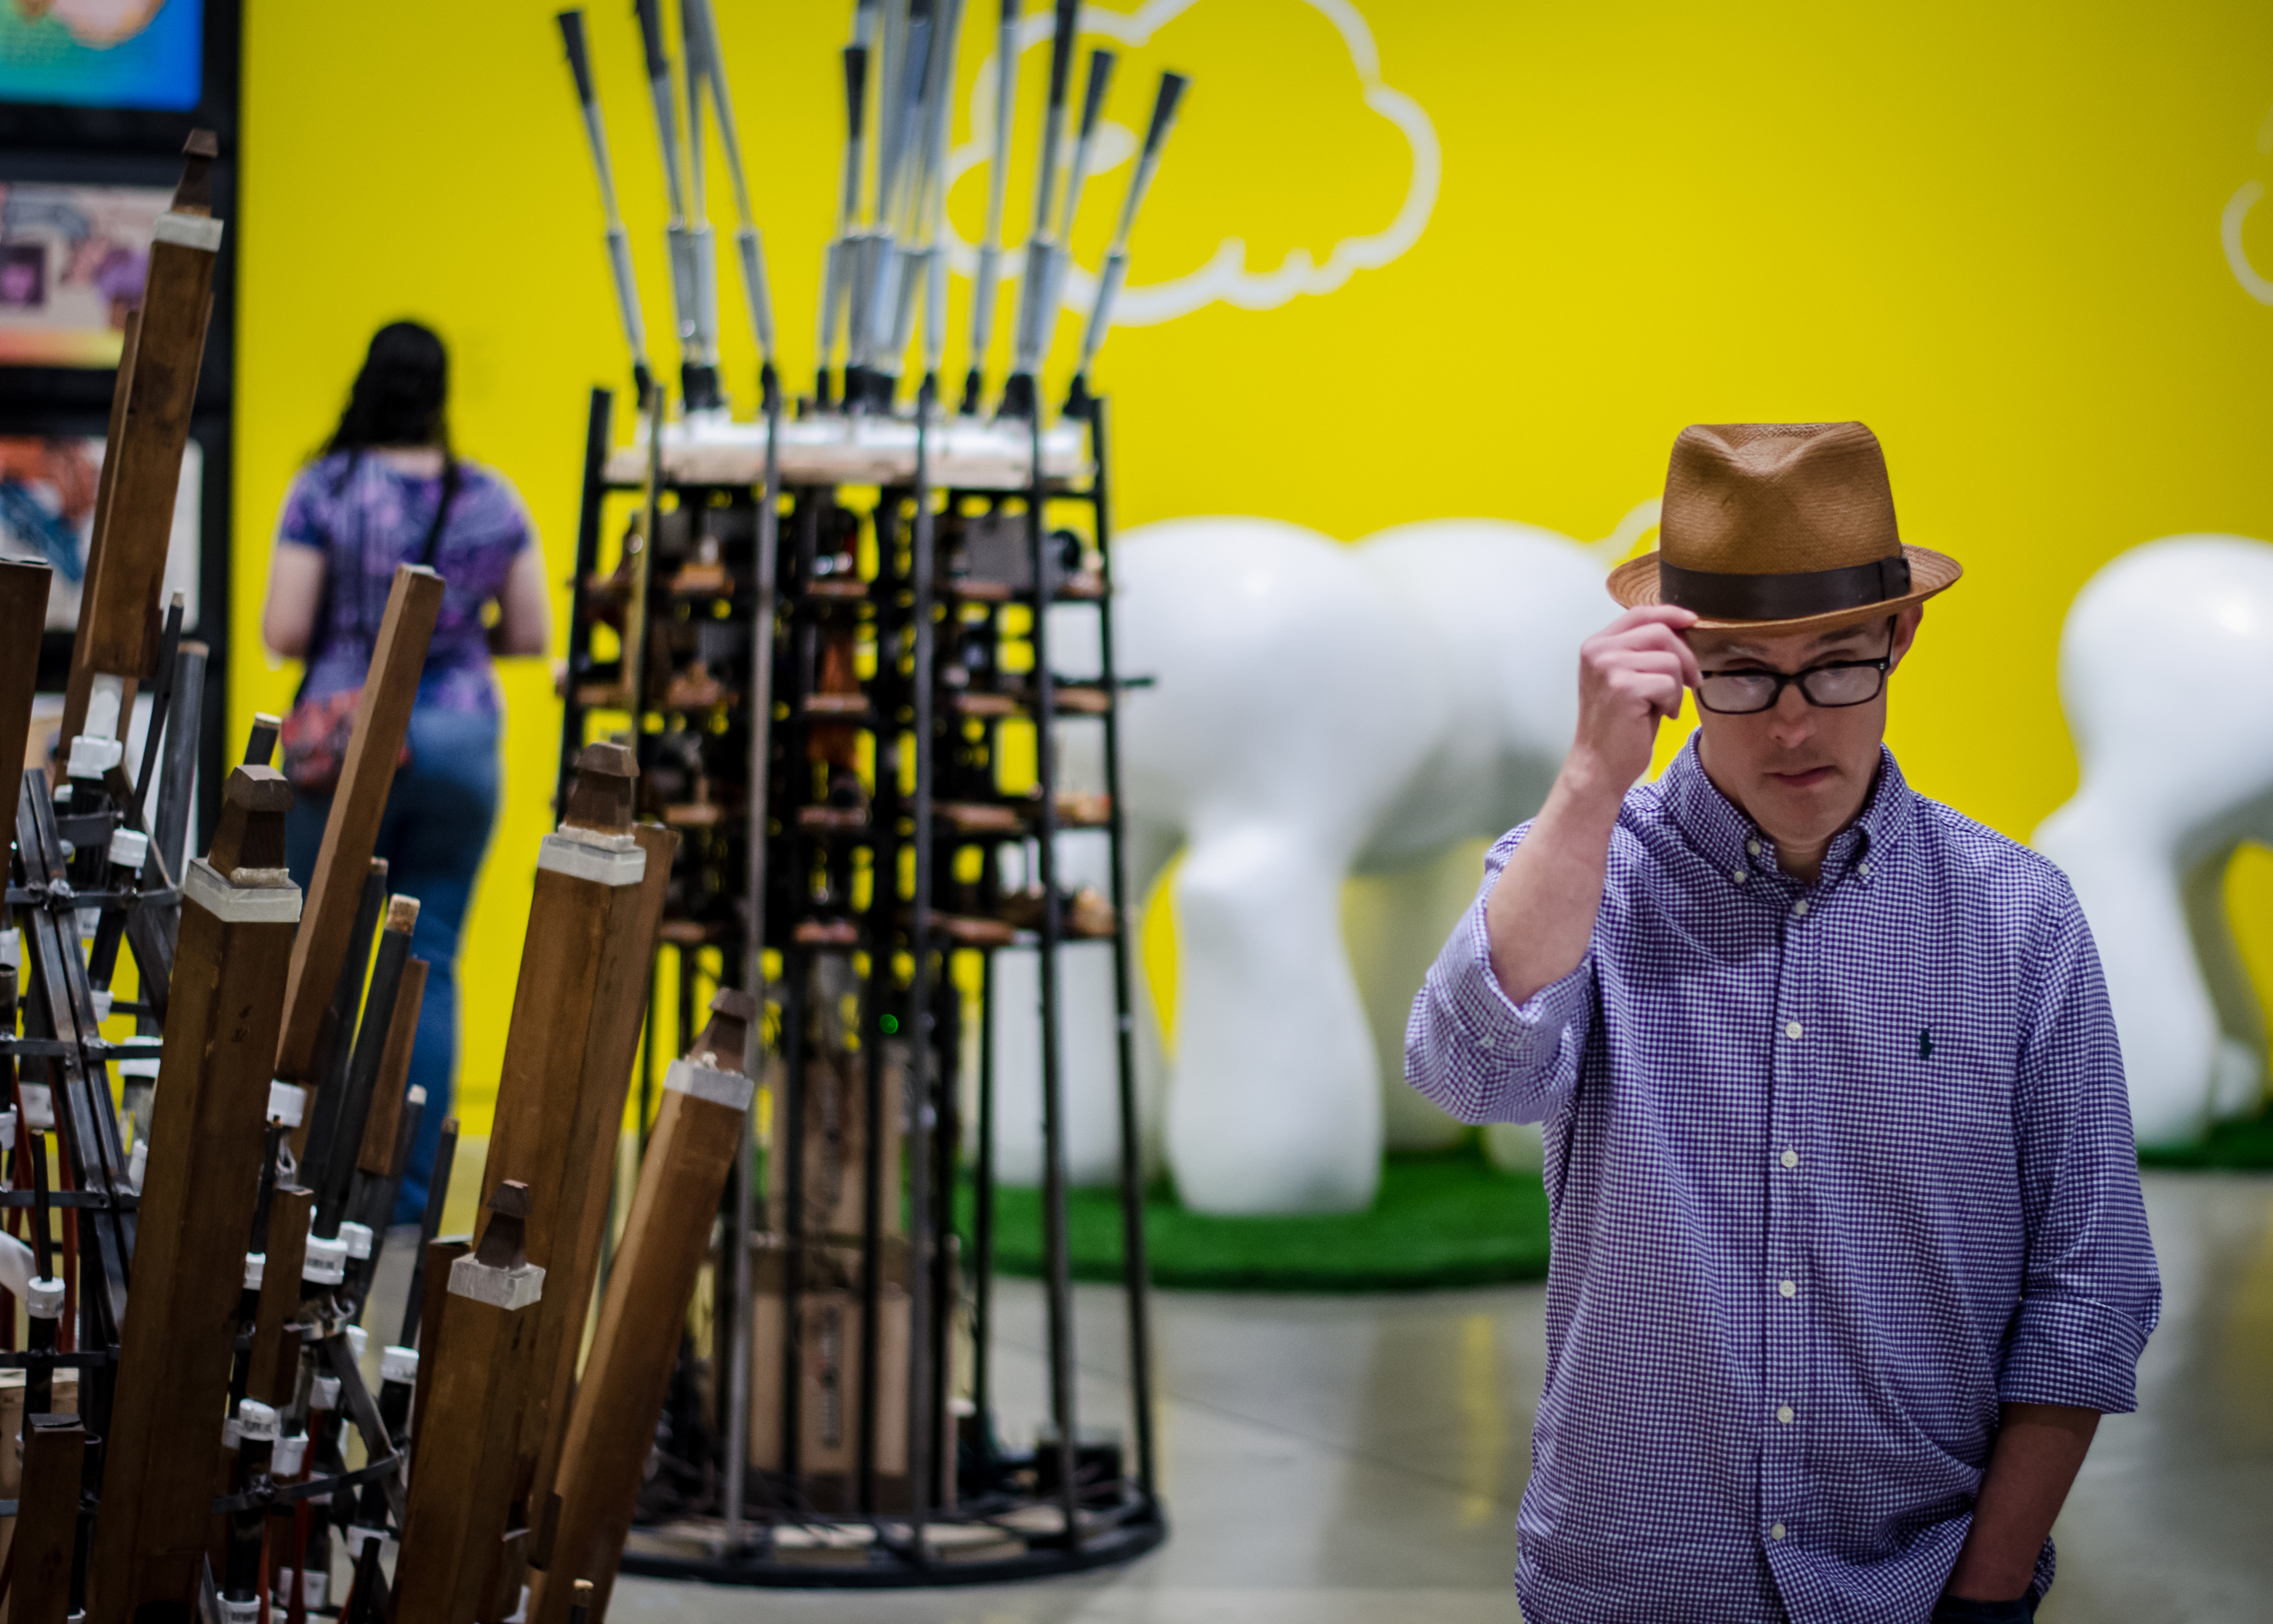 Brandon checked out the  MARK MOTHERSBAUGH: MYOPIA  exhibition at The Contemporary Austin. He loved it!